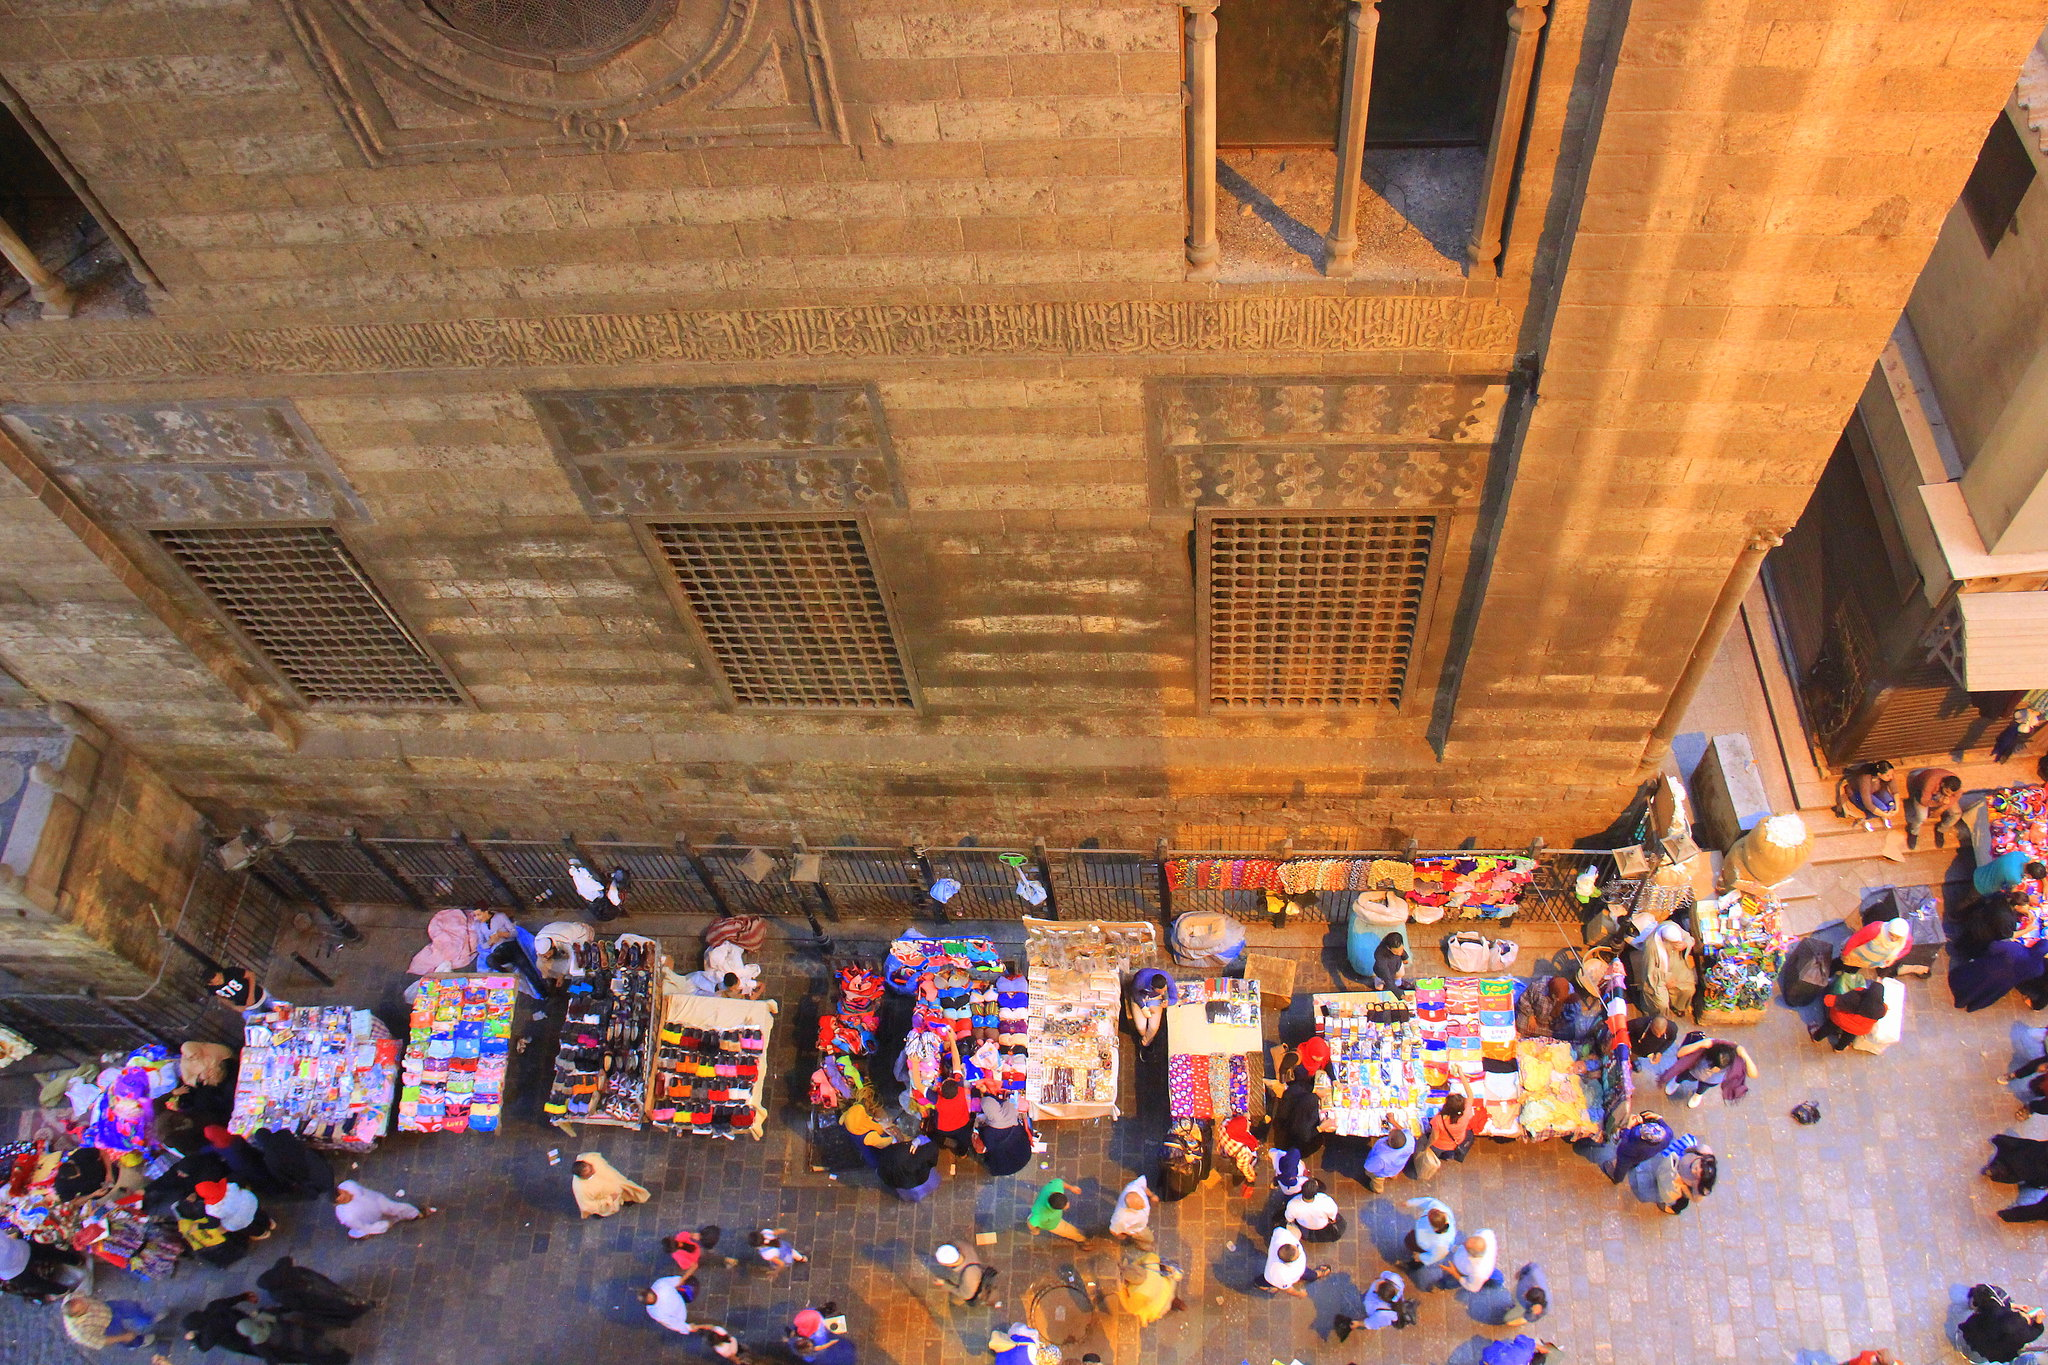 Streetlife as photographed in Cairo street photography tour